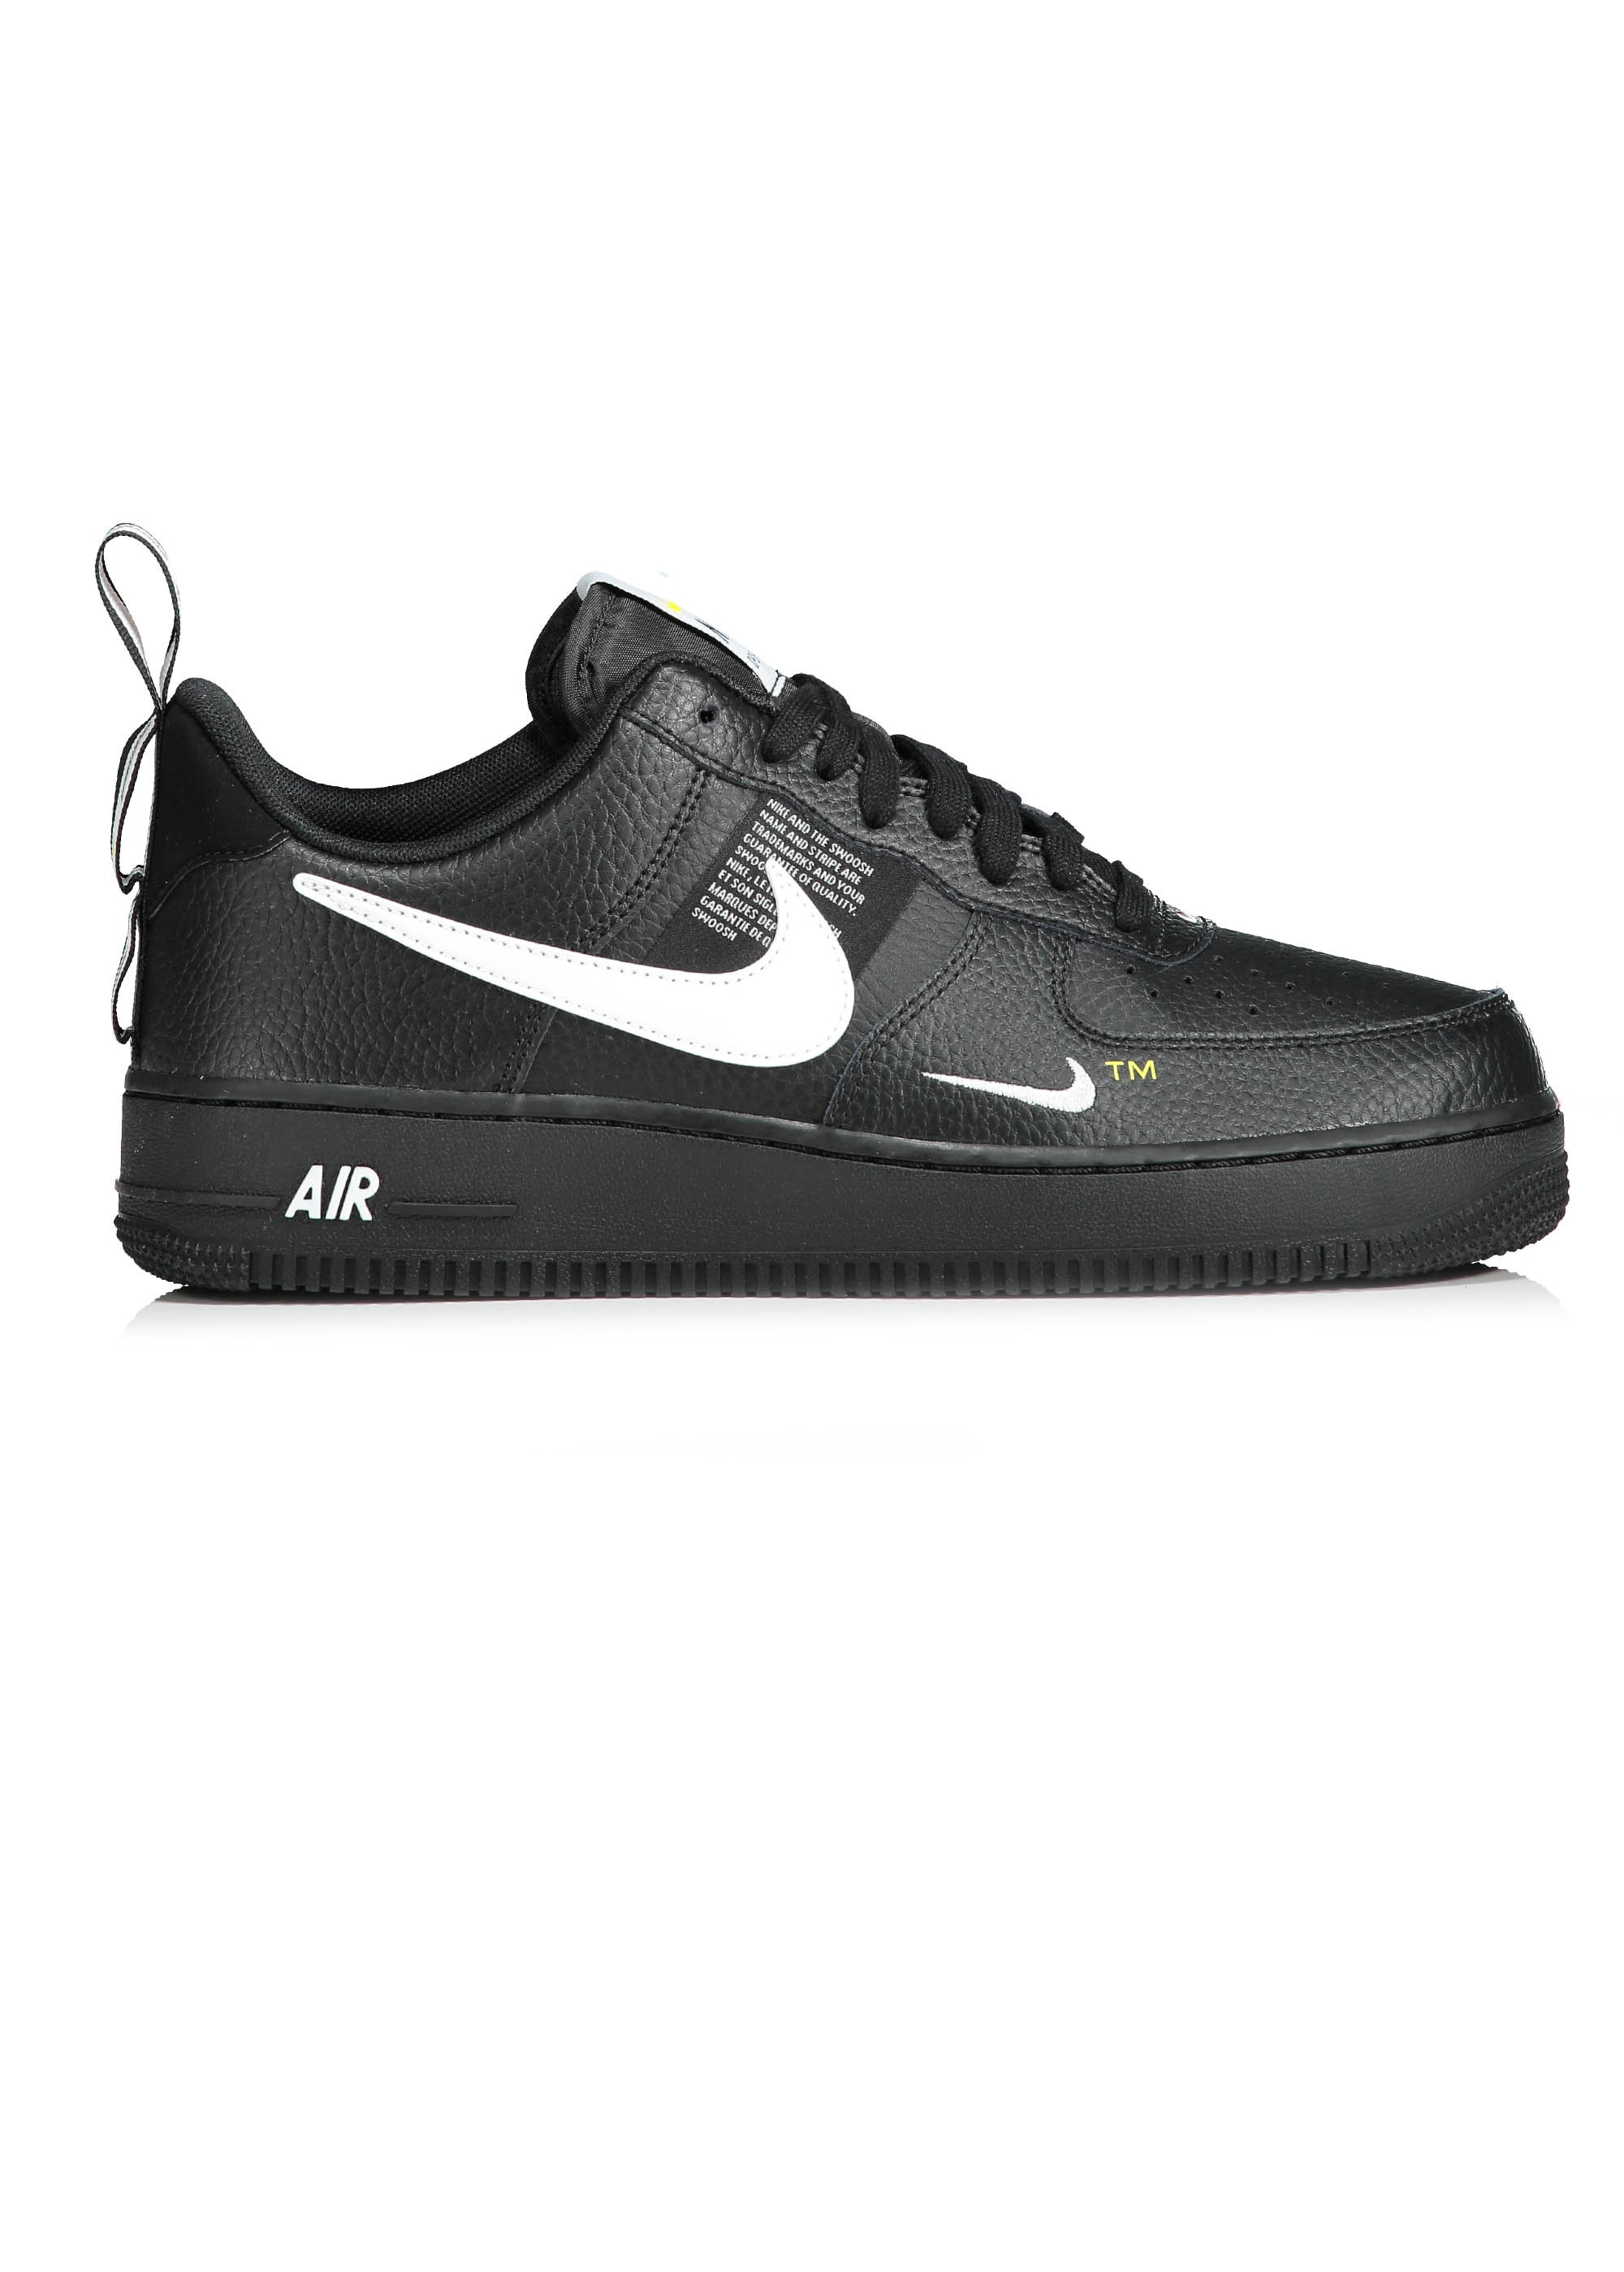 huge selection of b736f c720a Air Force 1 07 LV8 Utility - Black   White